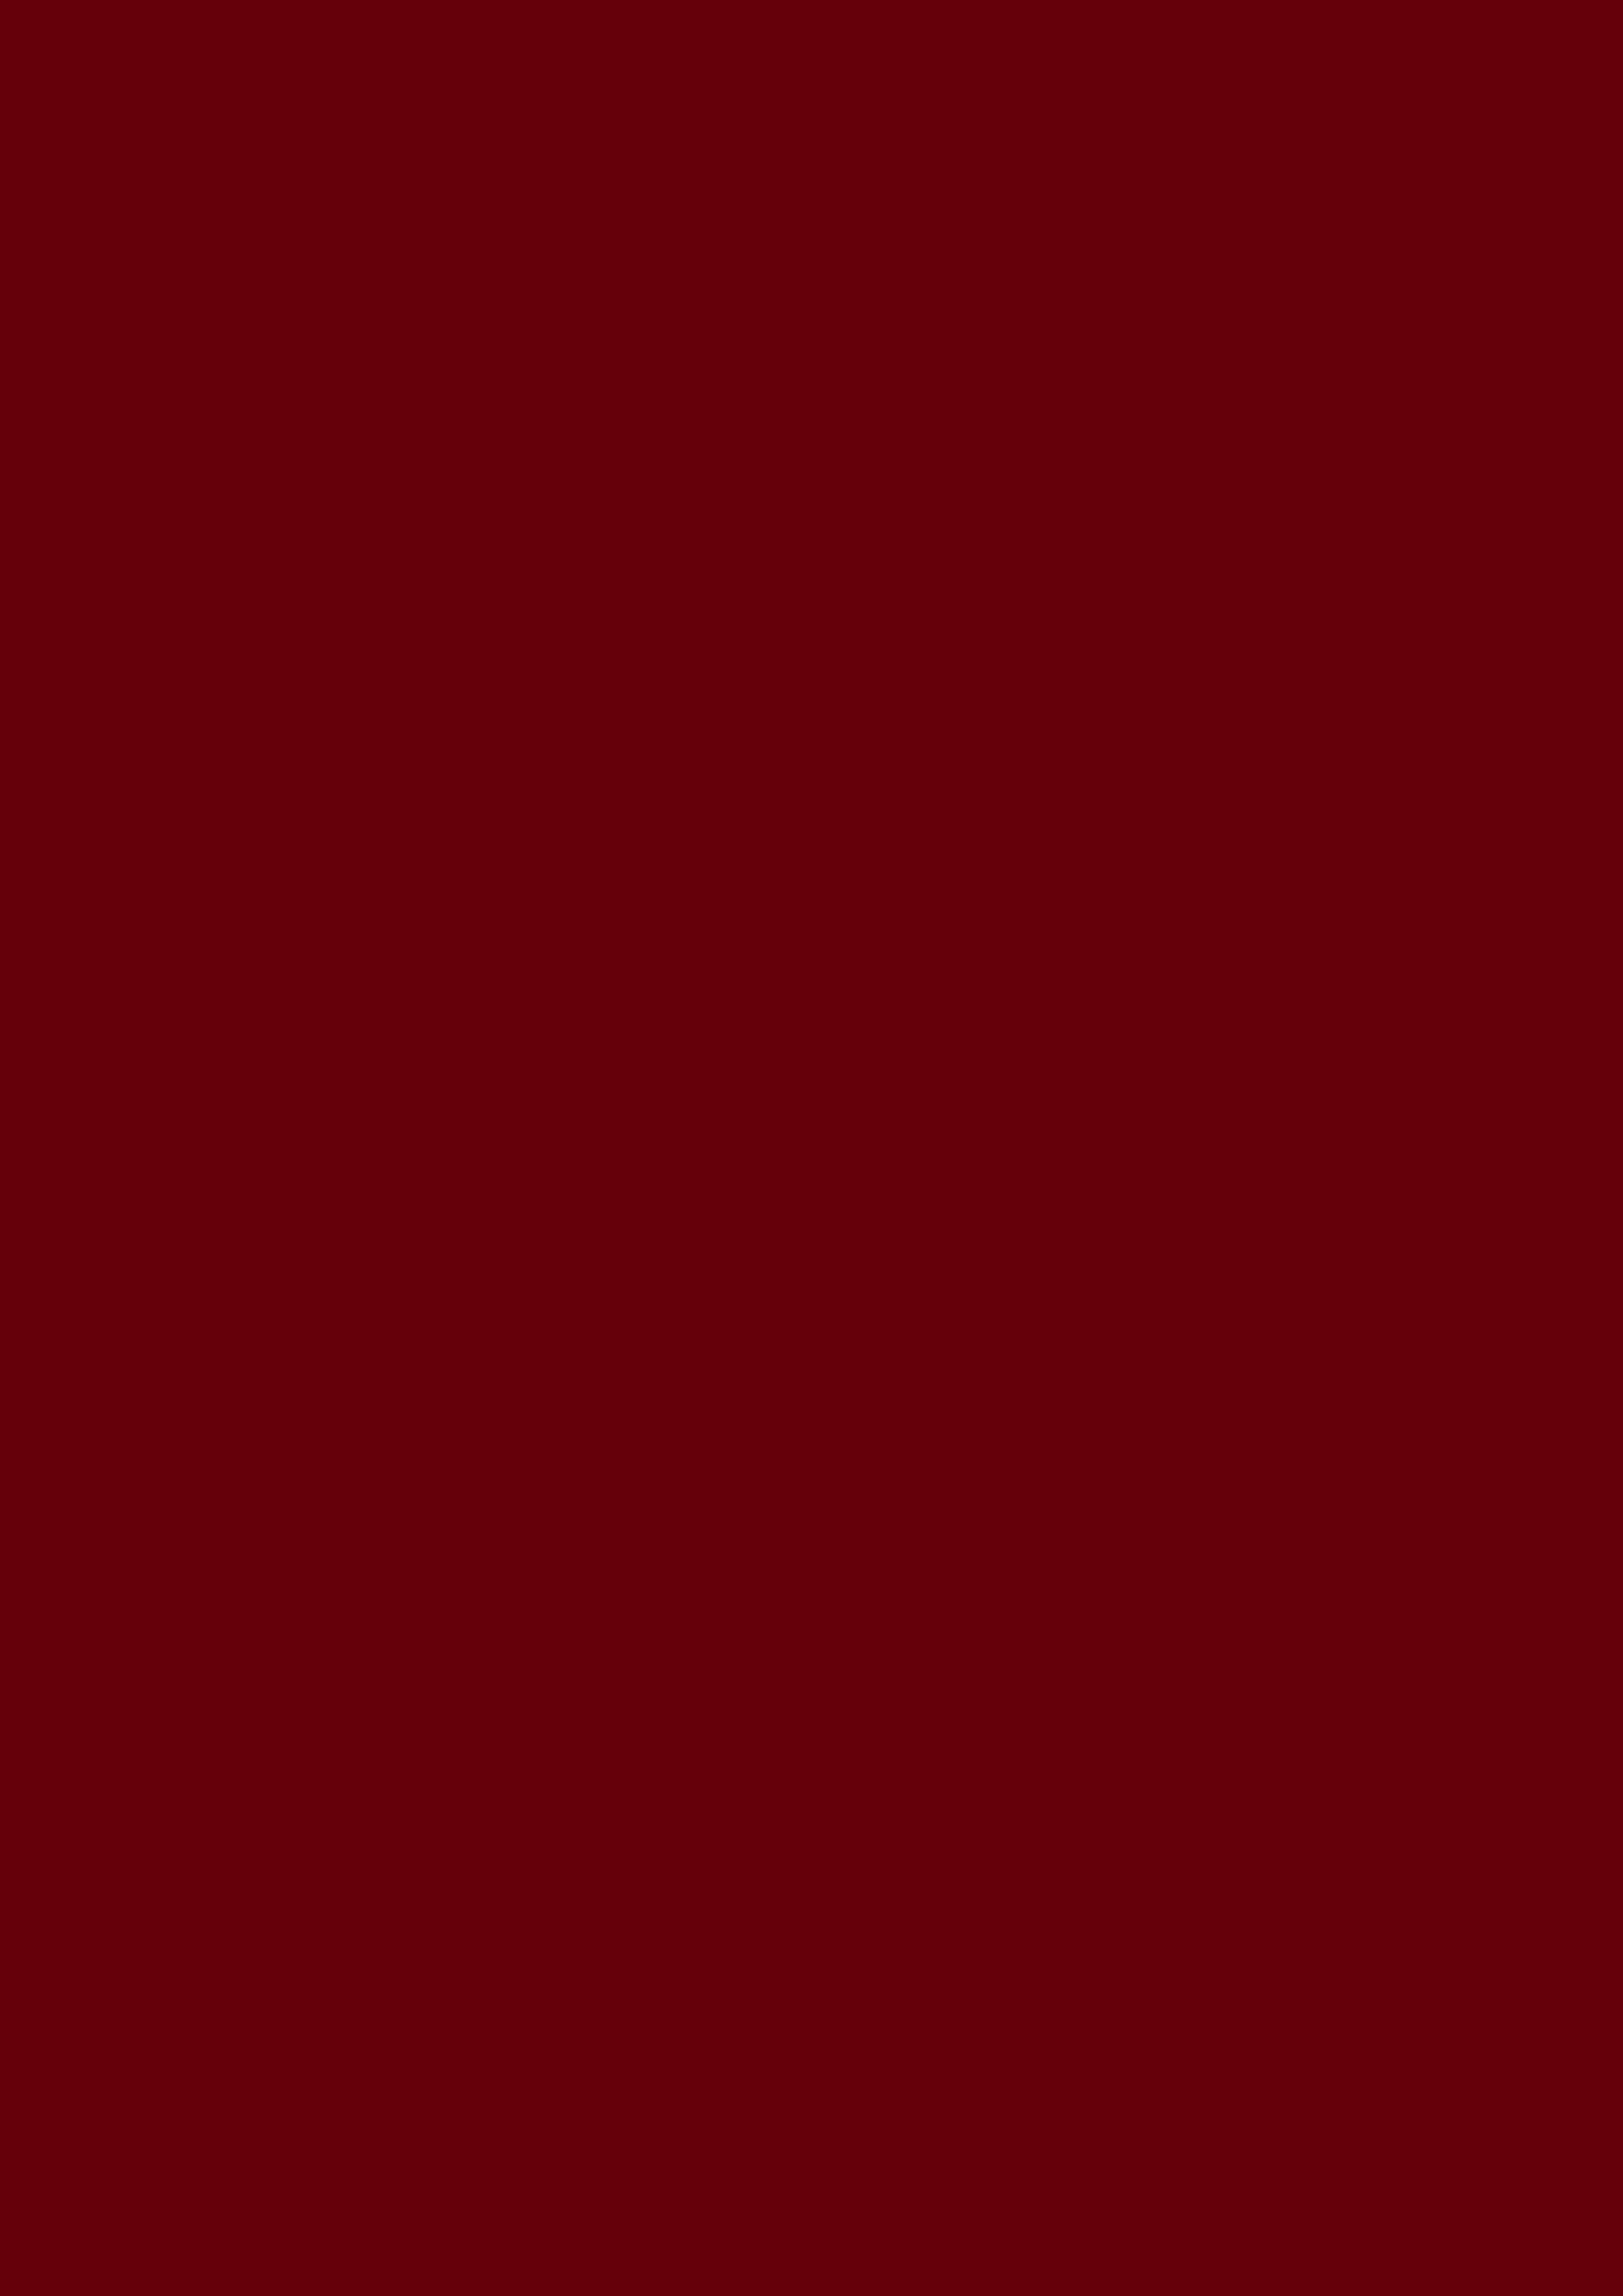 2480x3508 Rosewood Solid Color Background